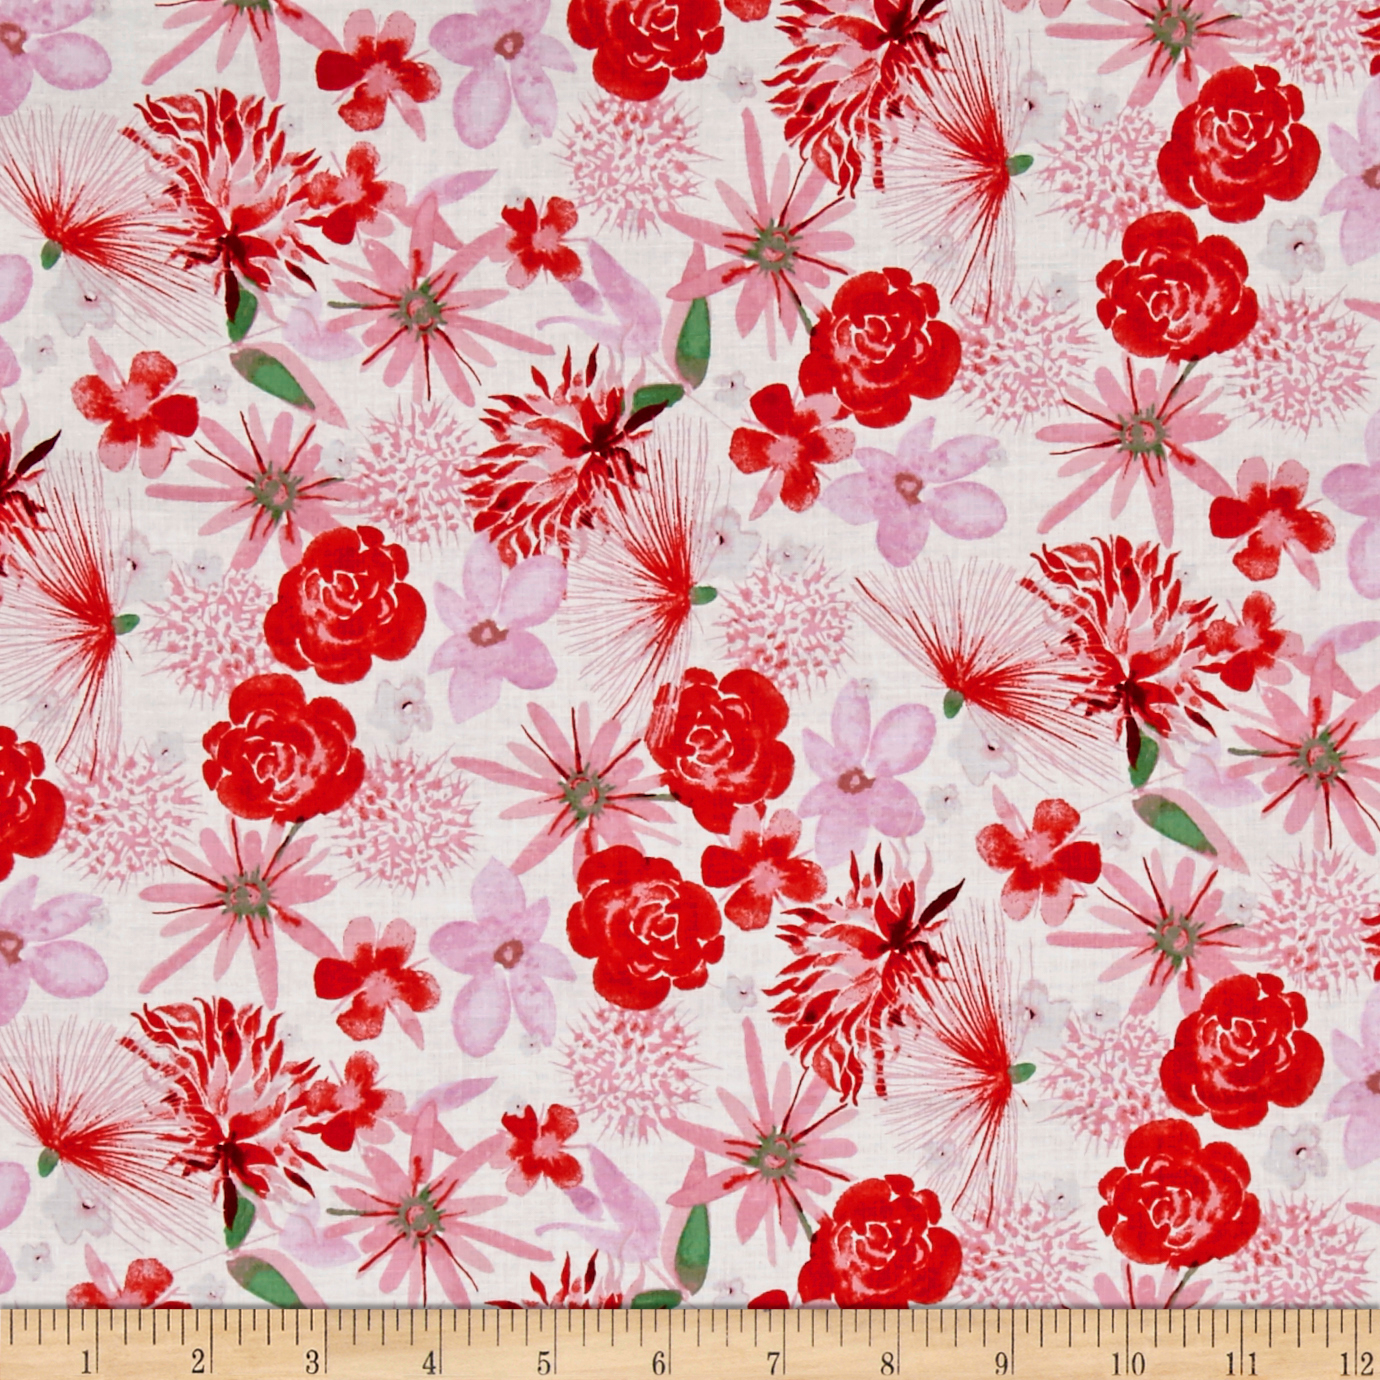 Baby Gone Wild Floral White Fabric by Clothworks in USA